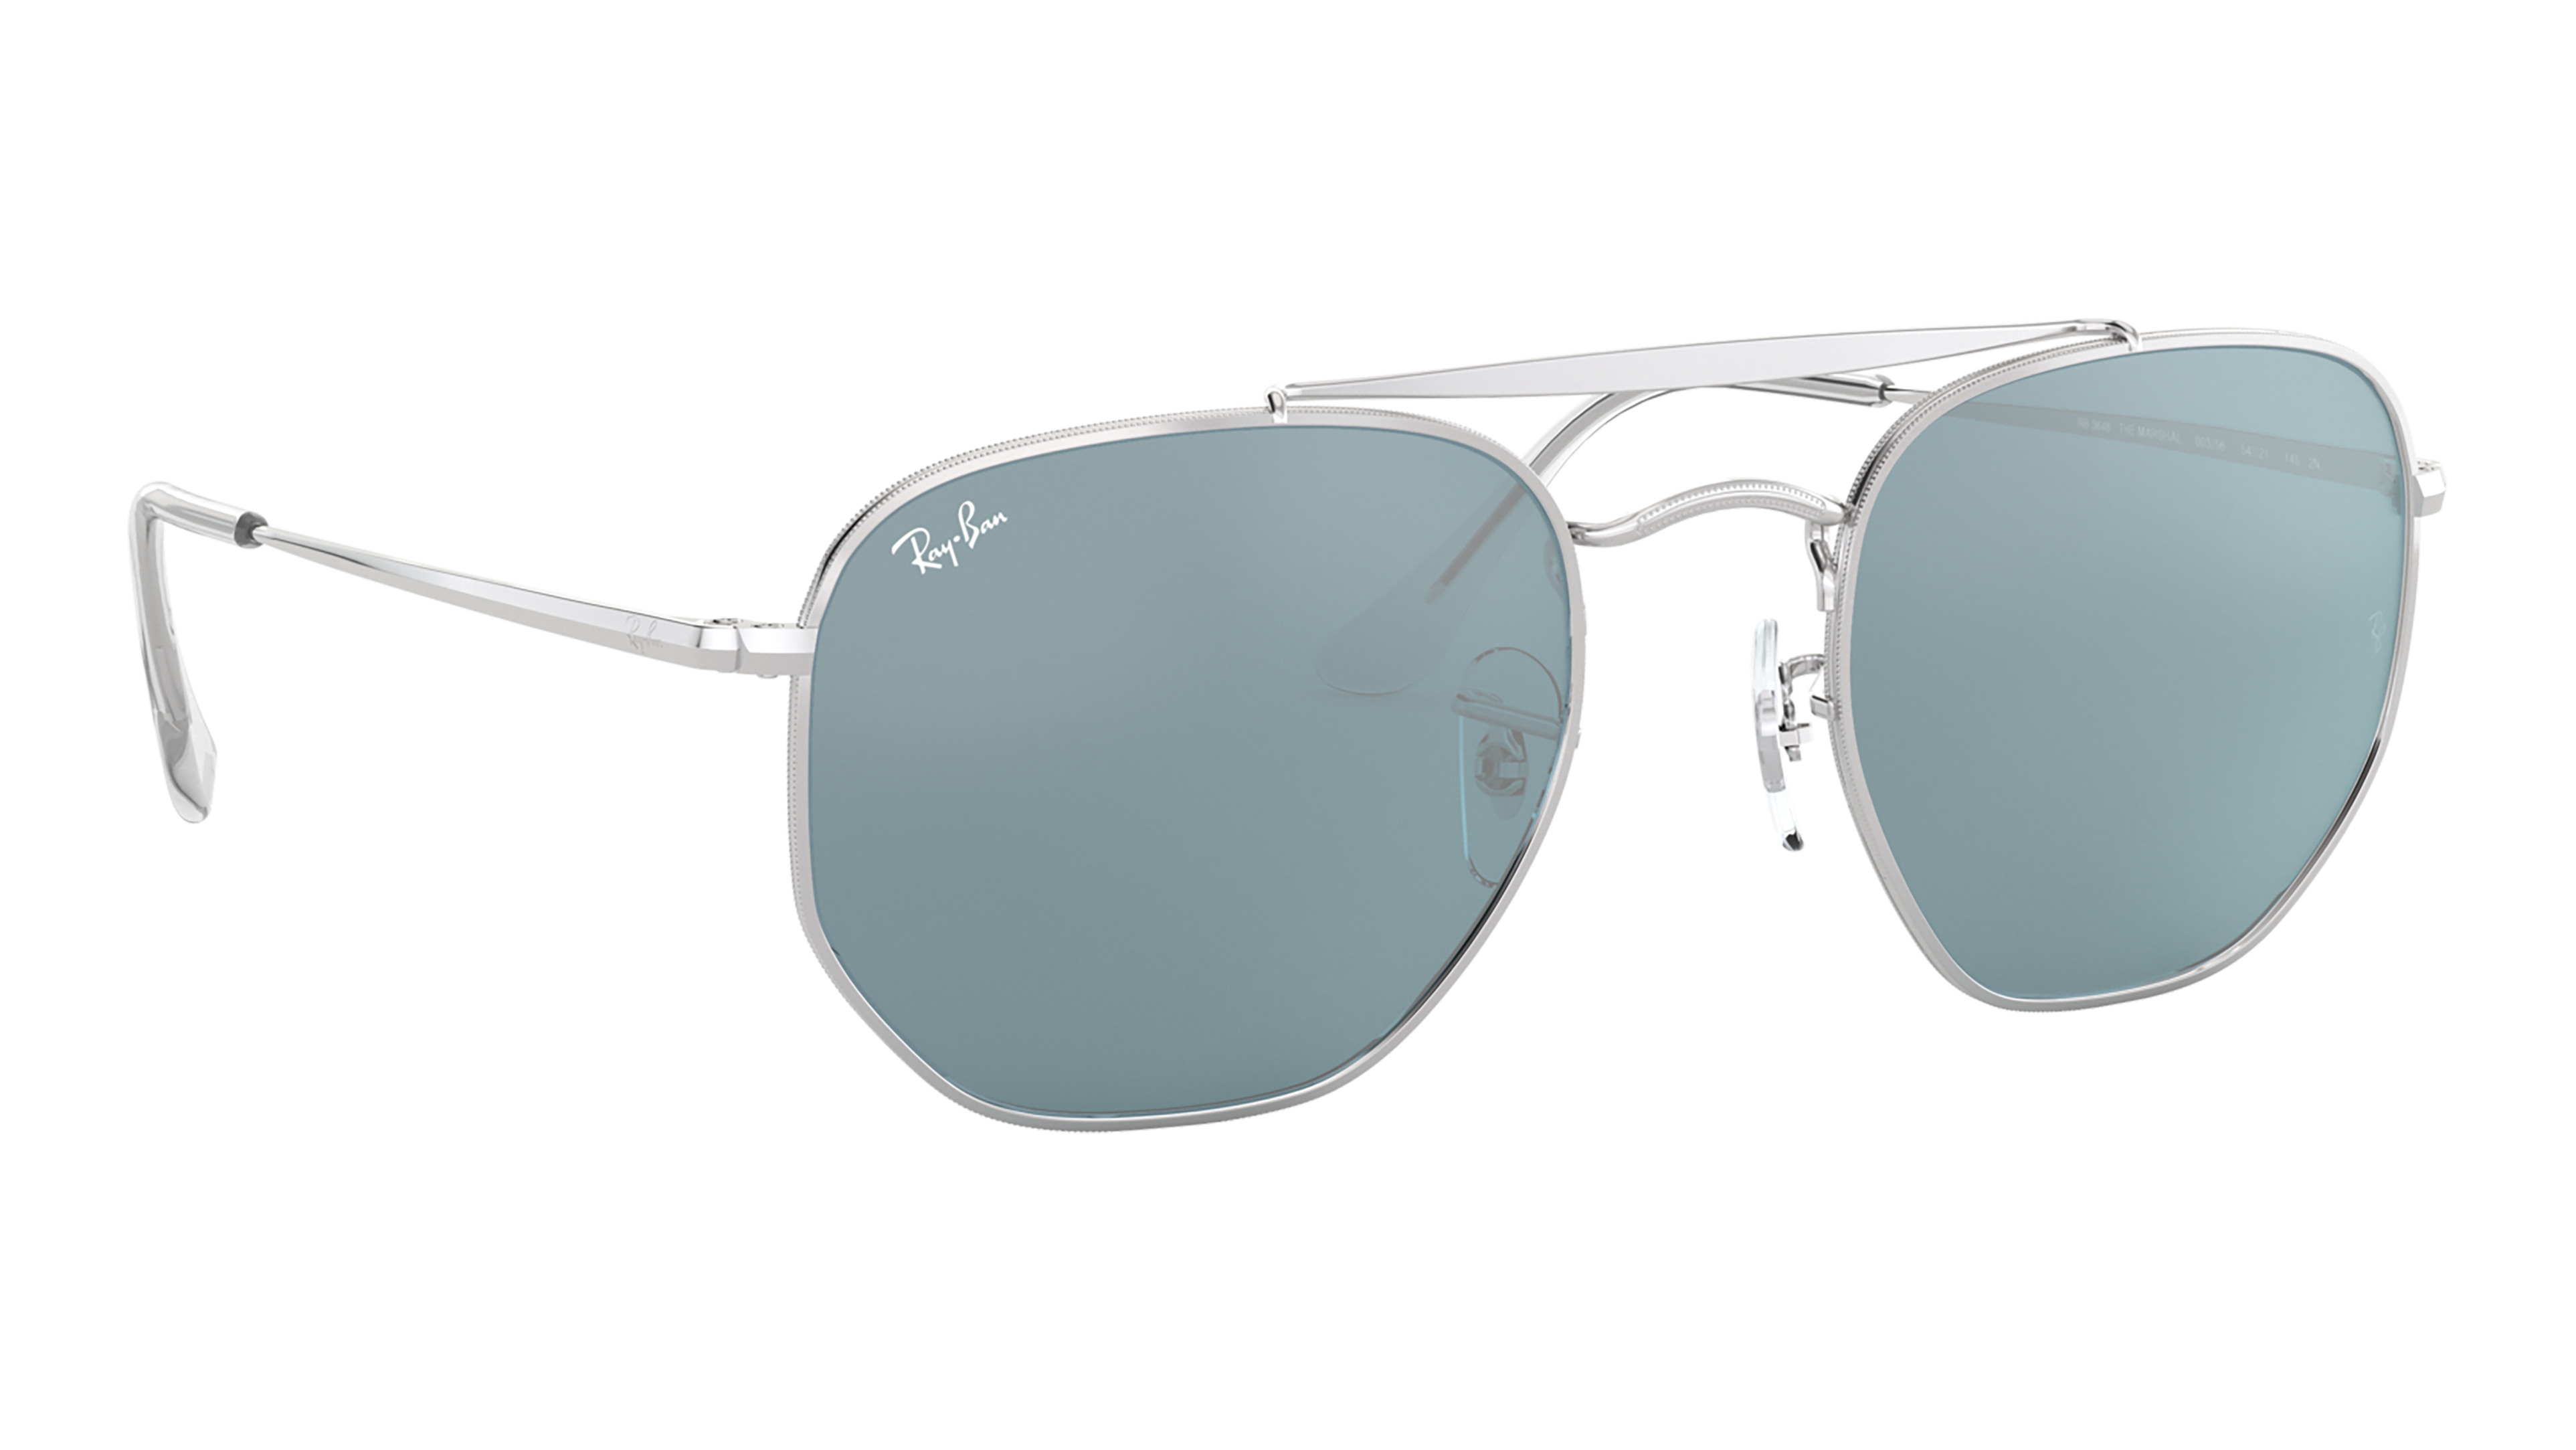 Angle_Right02 Ray-Ban Ray-Ban 0RB3648 003/56 54/21 Zilver/Blauw